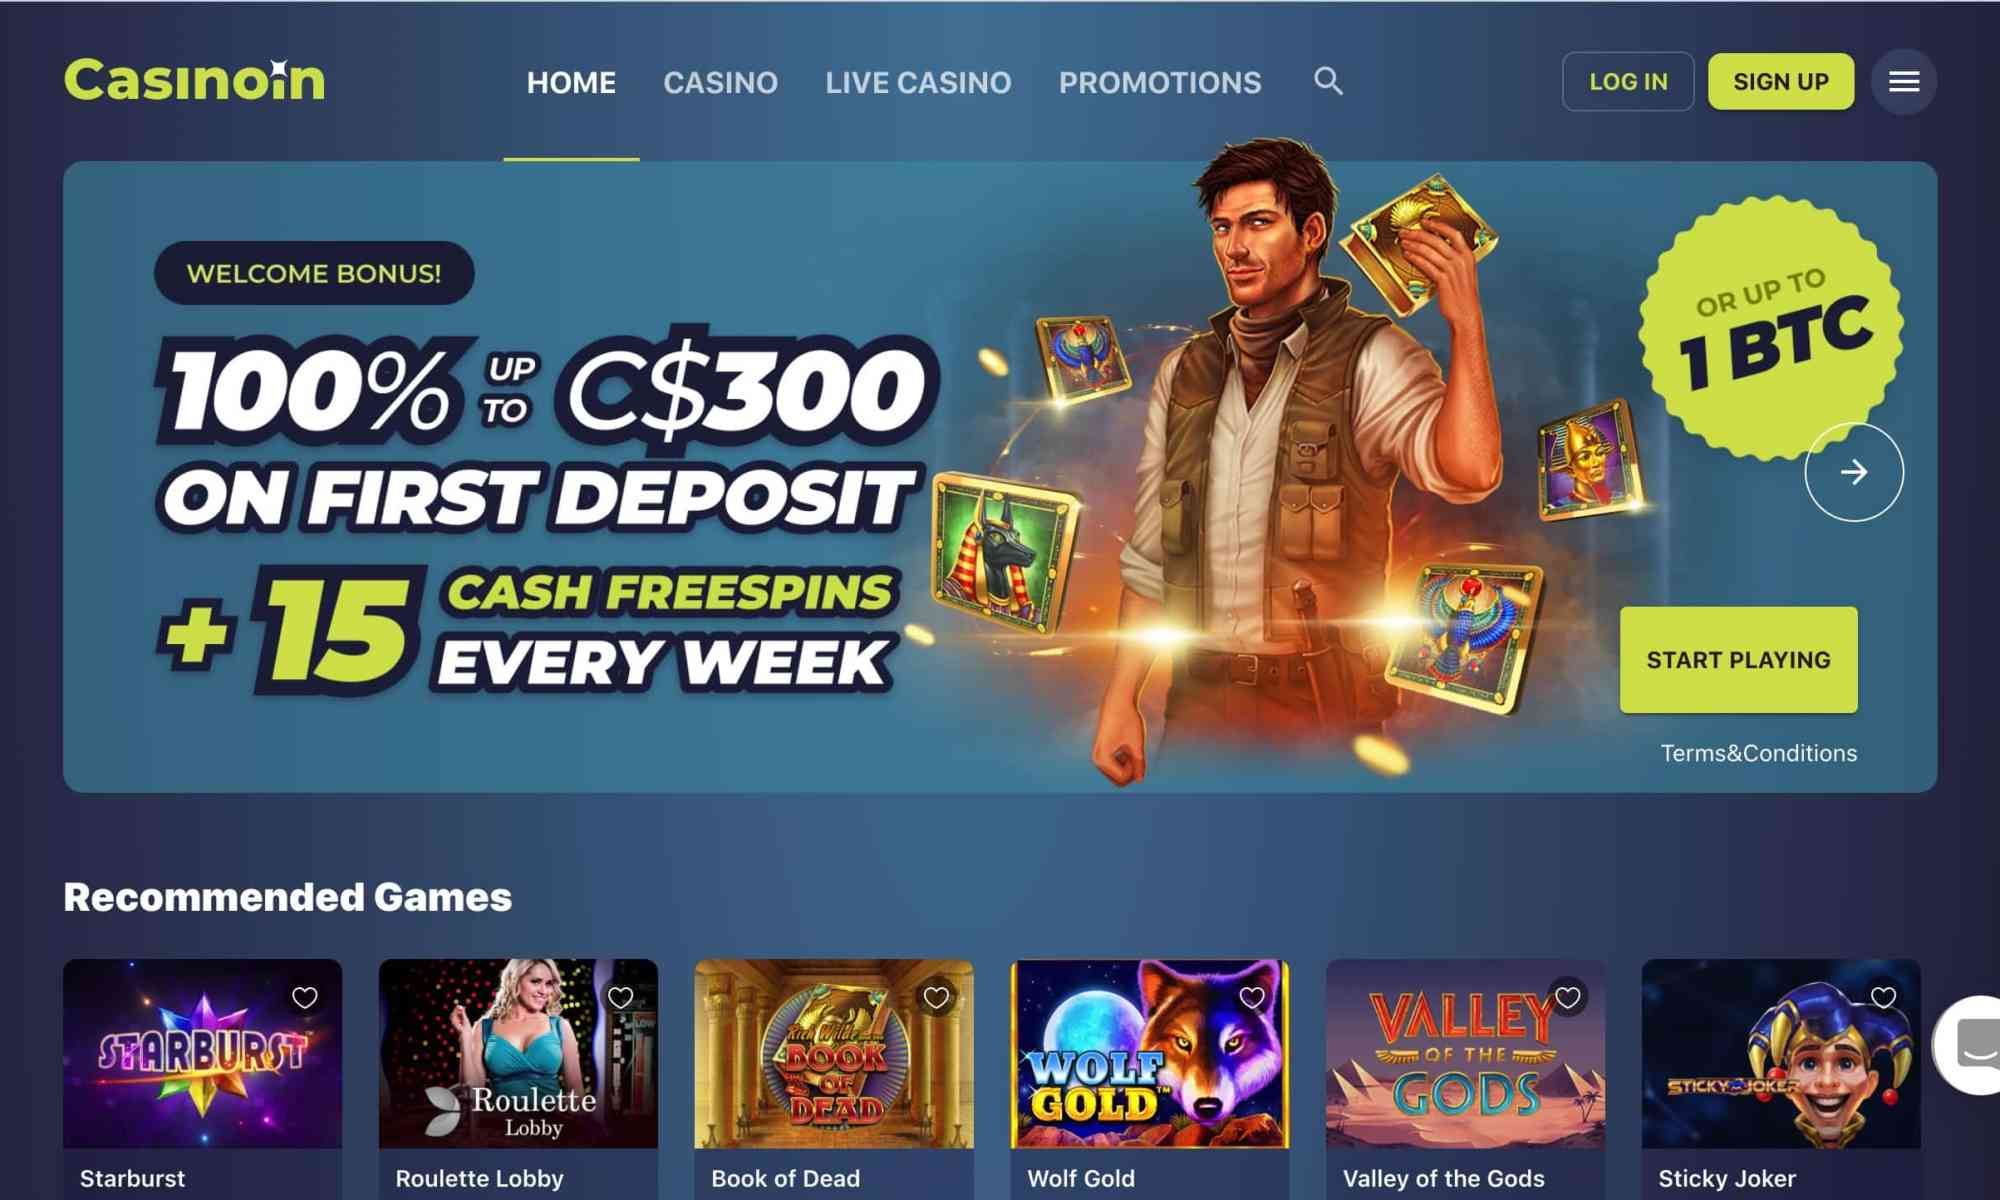 Casinoin - Get 100% deposit bonus + 15 free spins every week